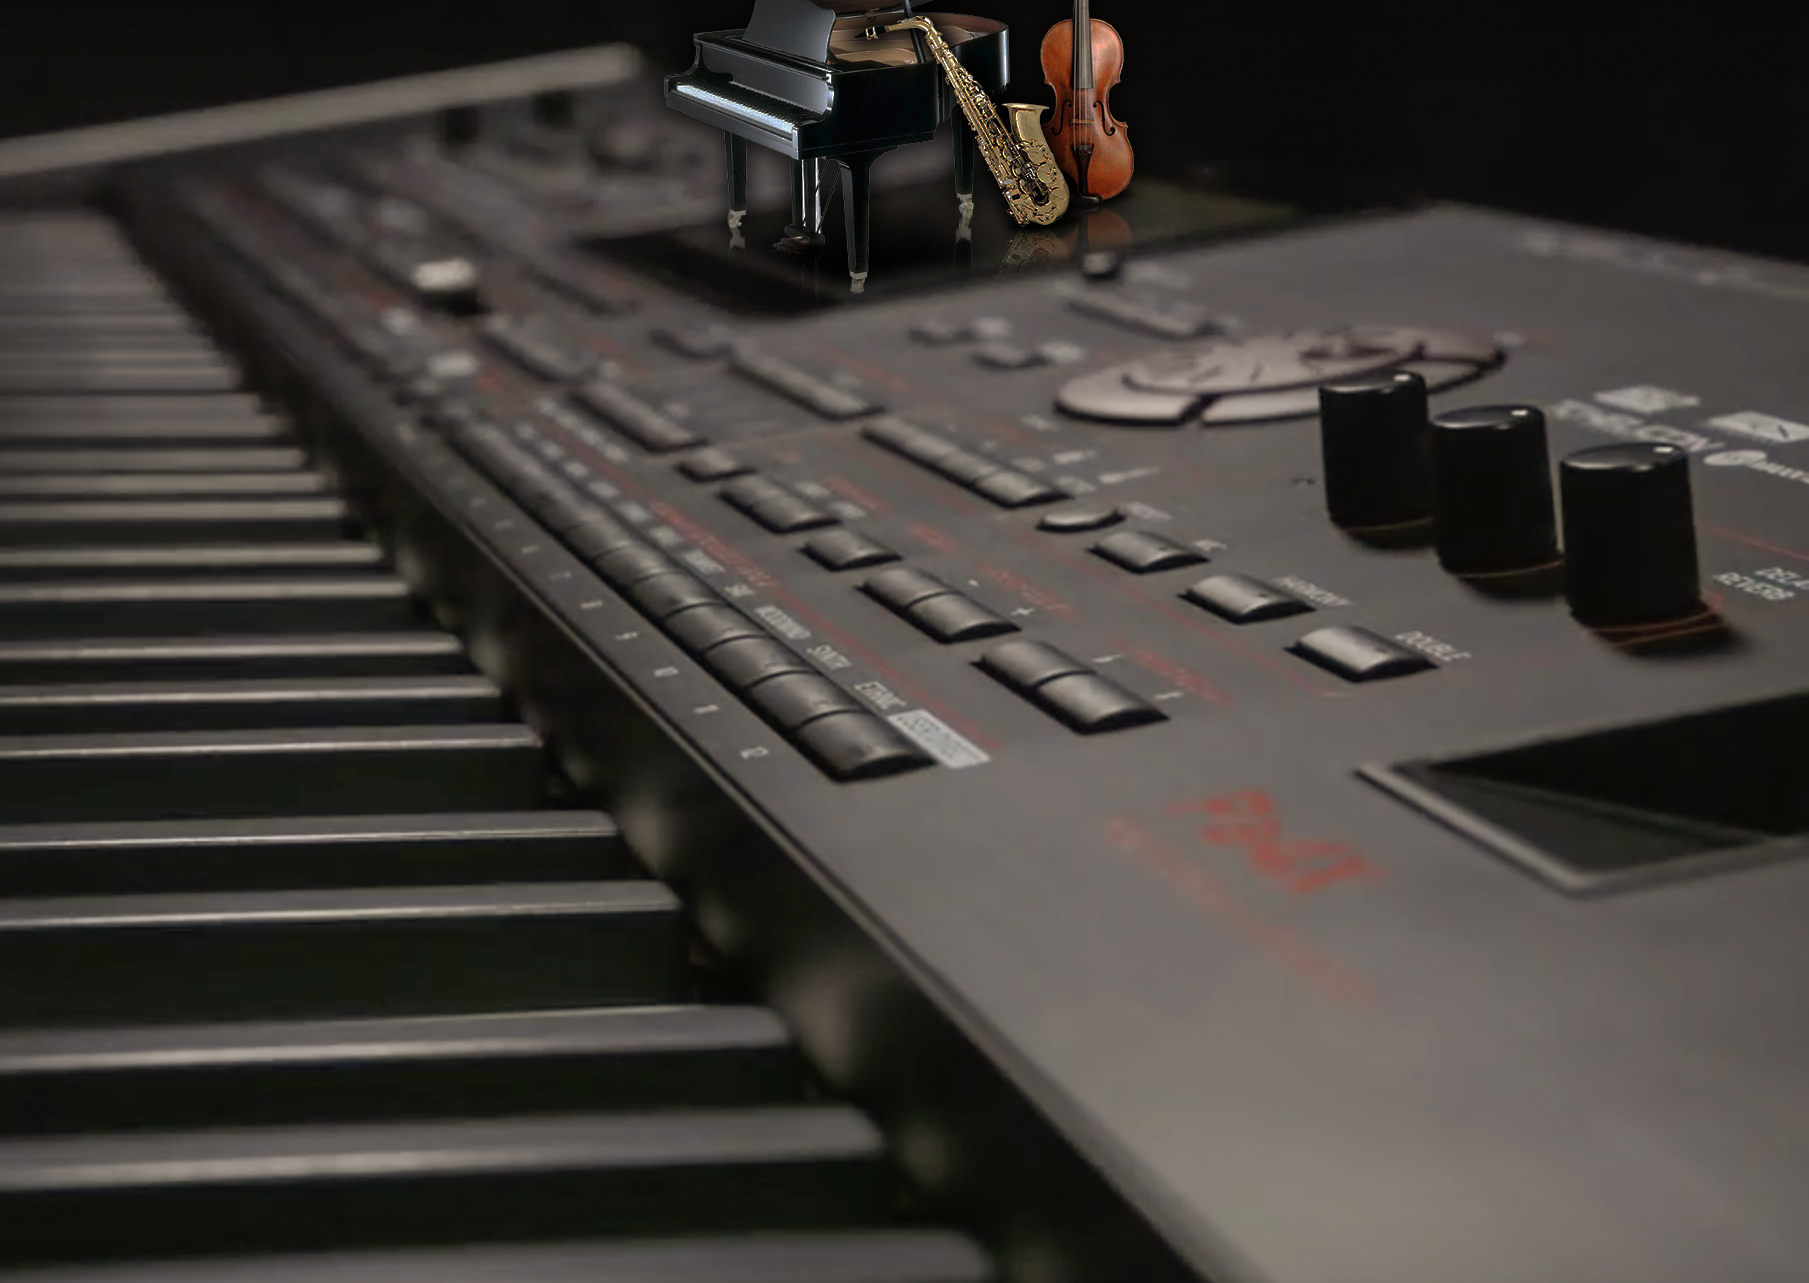 Korg Pa4x Review - Amazing Features! | One Man Band